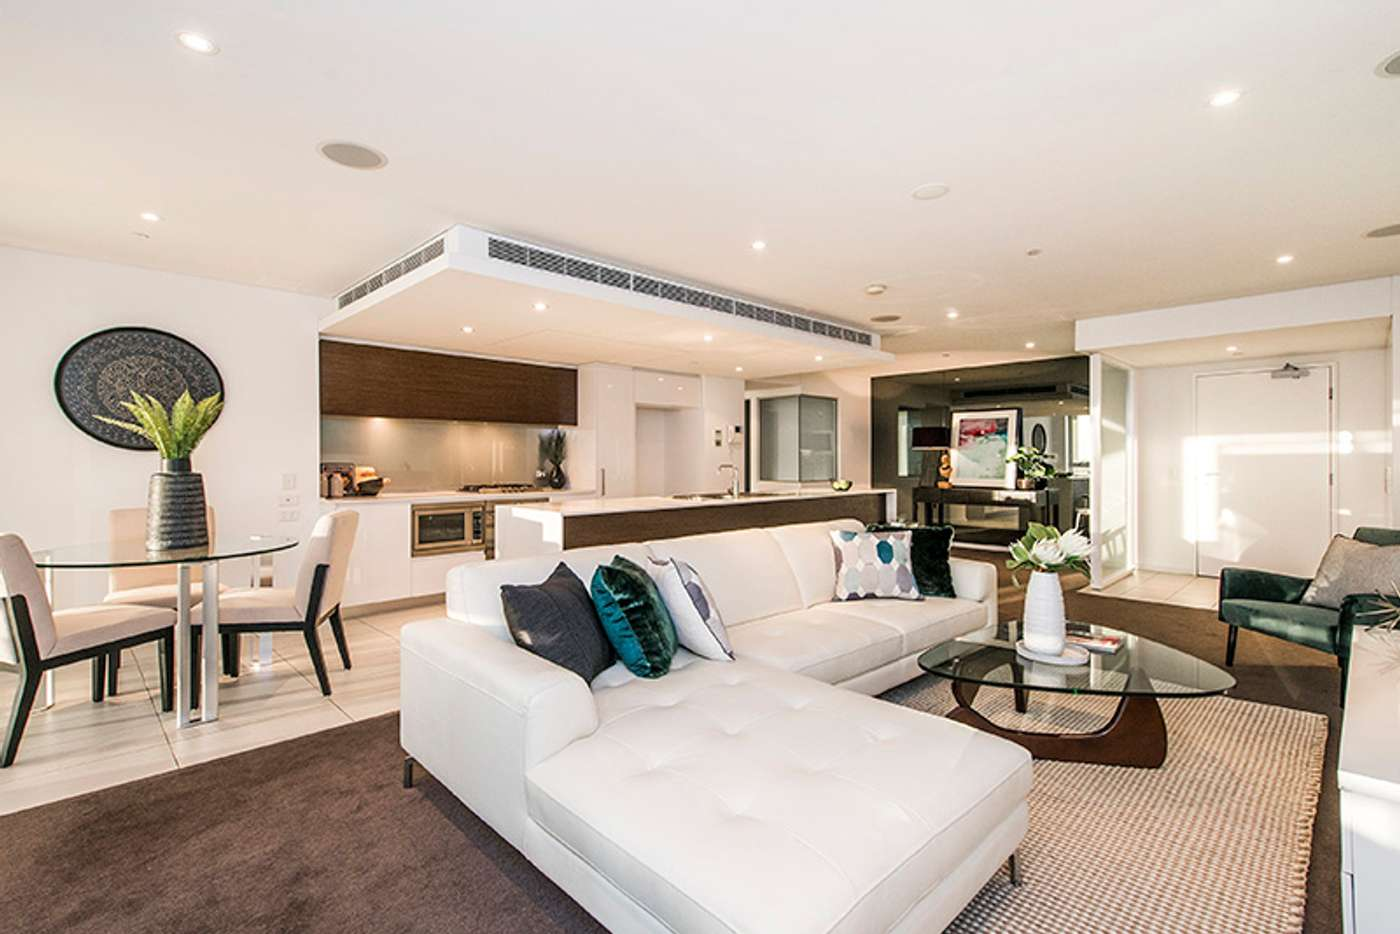 Main view of Homely apartment listing, 901/21 BOW RIVER, Burswood WA 6100